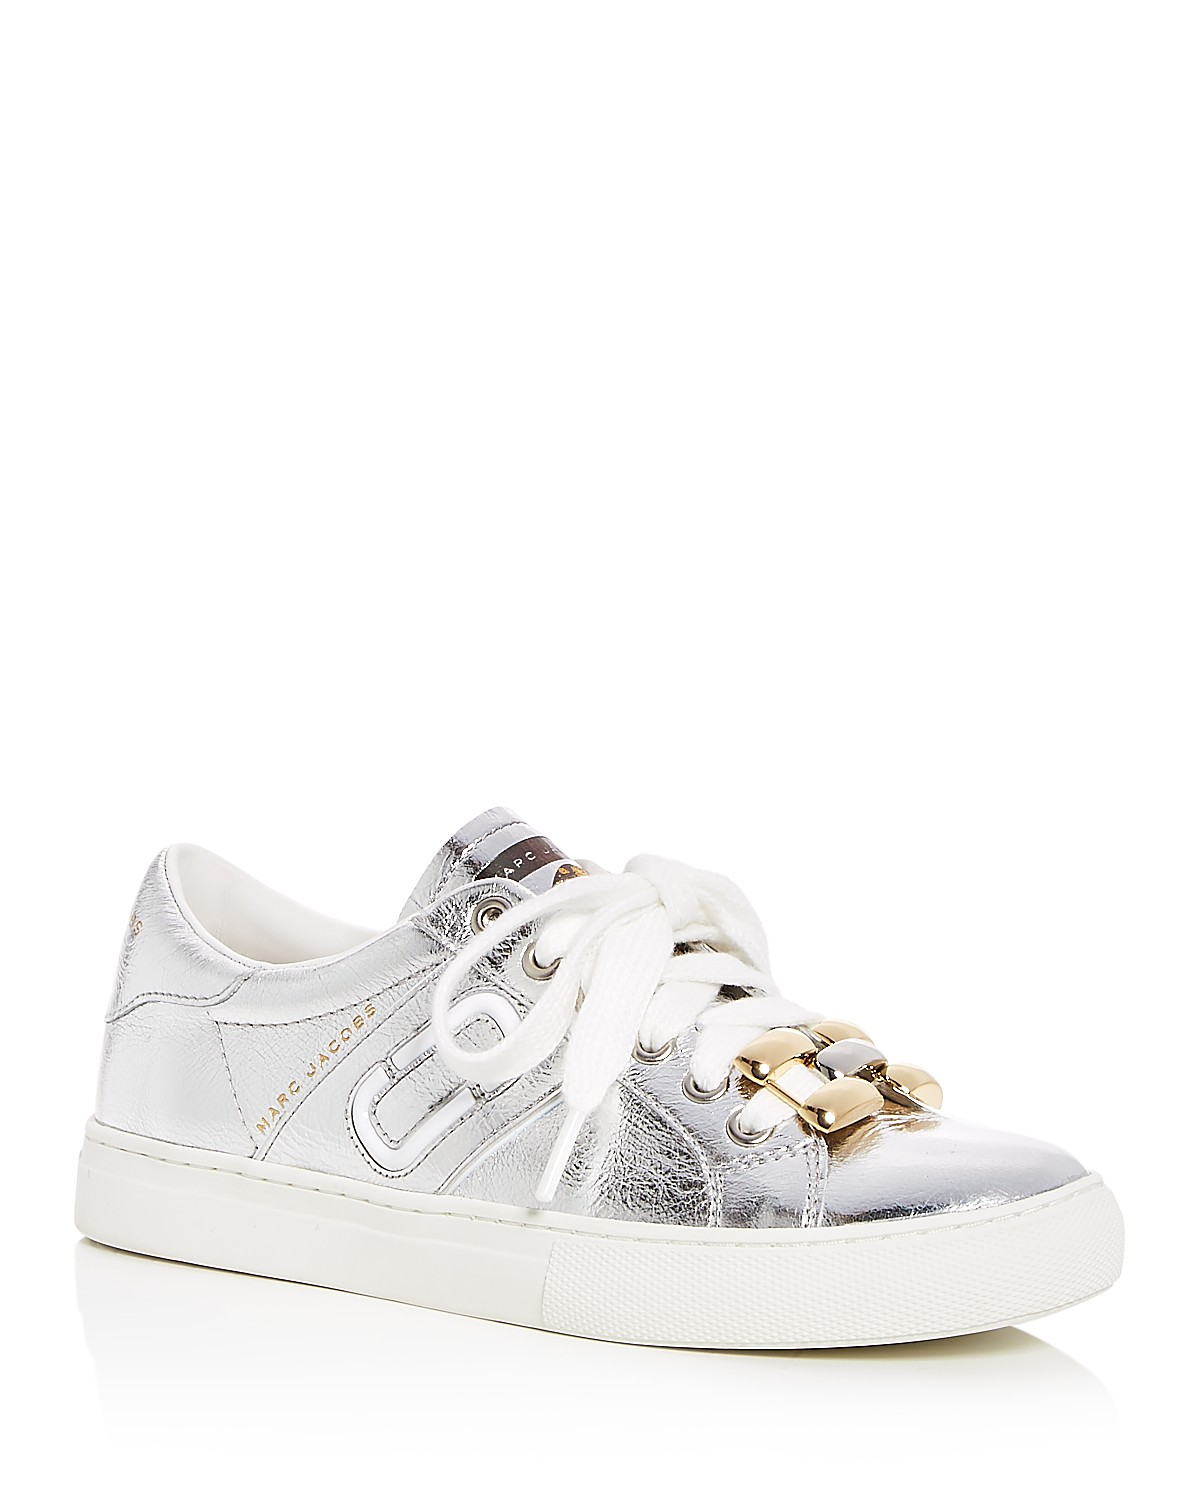 Marc Jacobs Women's Empire Leather Chain Link Lace Up Sneakers qoSLl